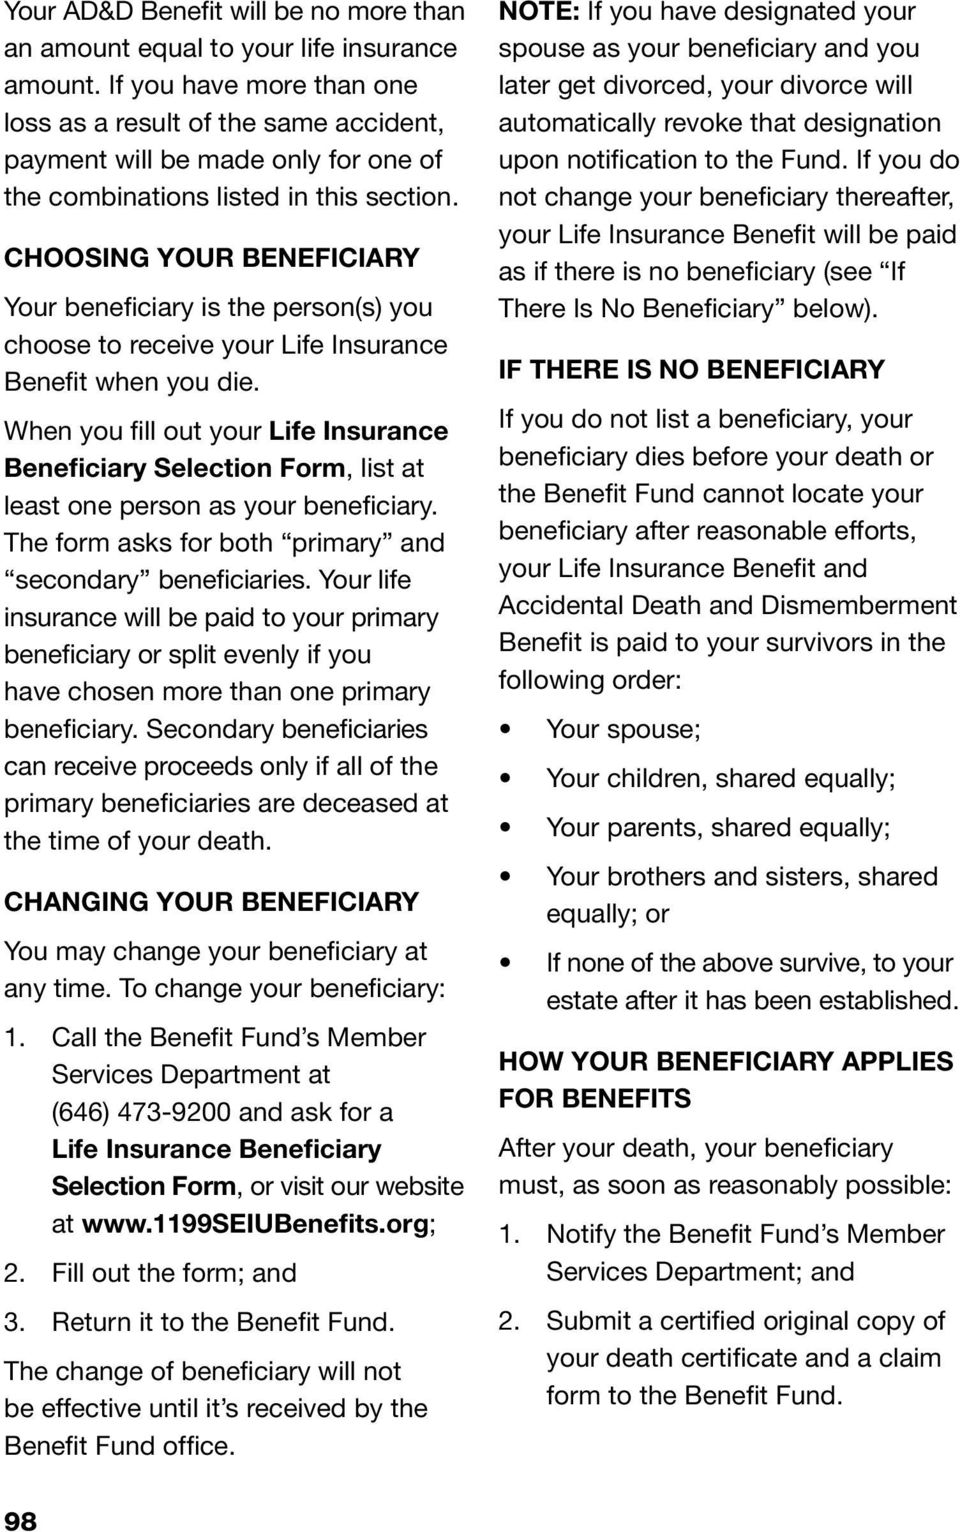 CHOOSING YOUR BENEFICIARY Your beneficiary is the person(s) you choose to receive your Life Insurance Benefit when you die.